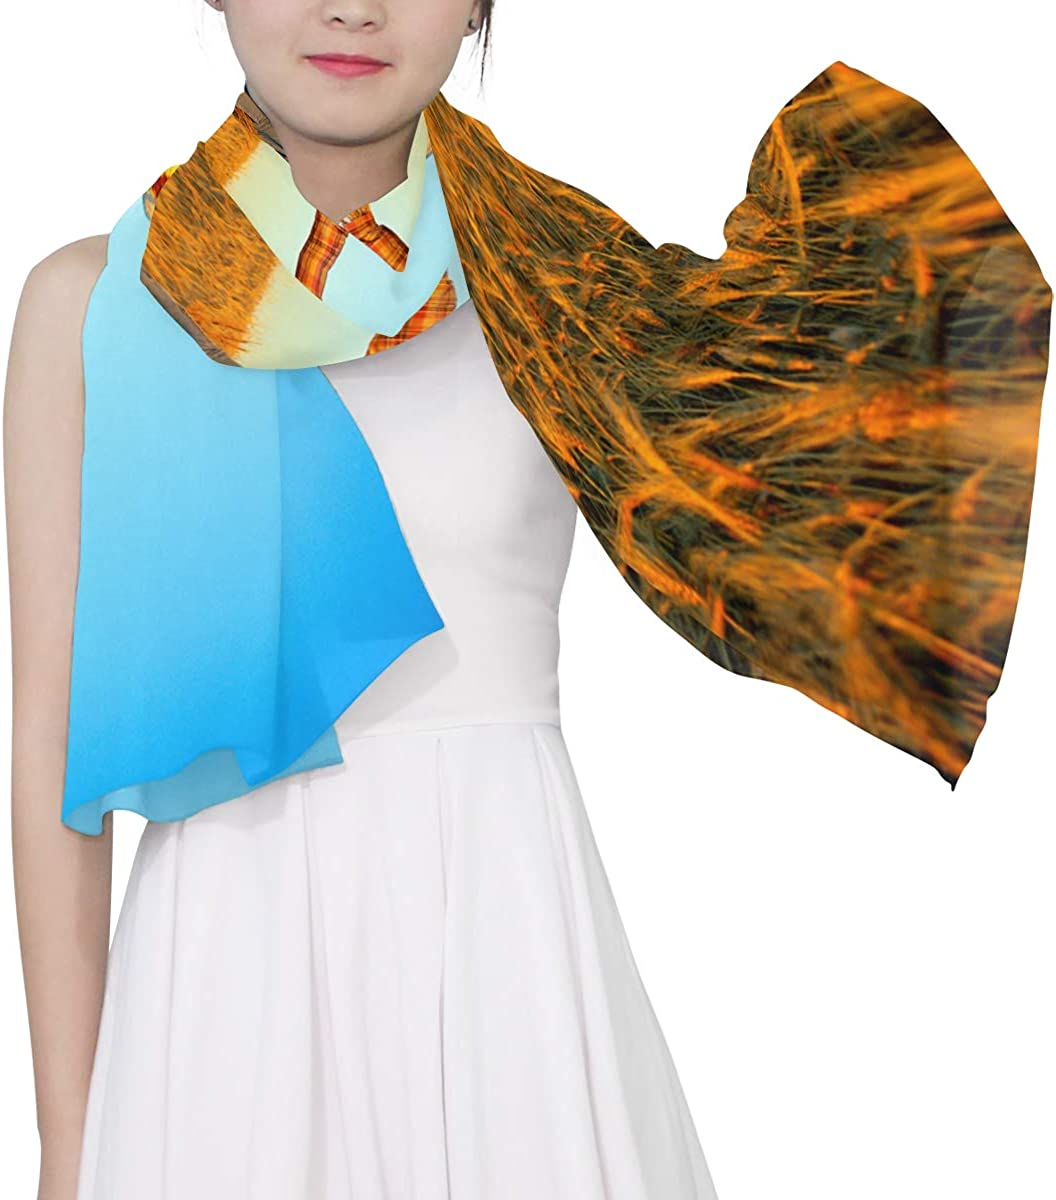 Cute Scarecrow Doll Unique Fashion Scarf For Women Lightweight Fashion Fall Winter Print Scarves Shawl Wraps Gifts For Early Spring